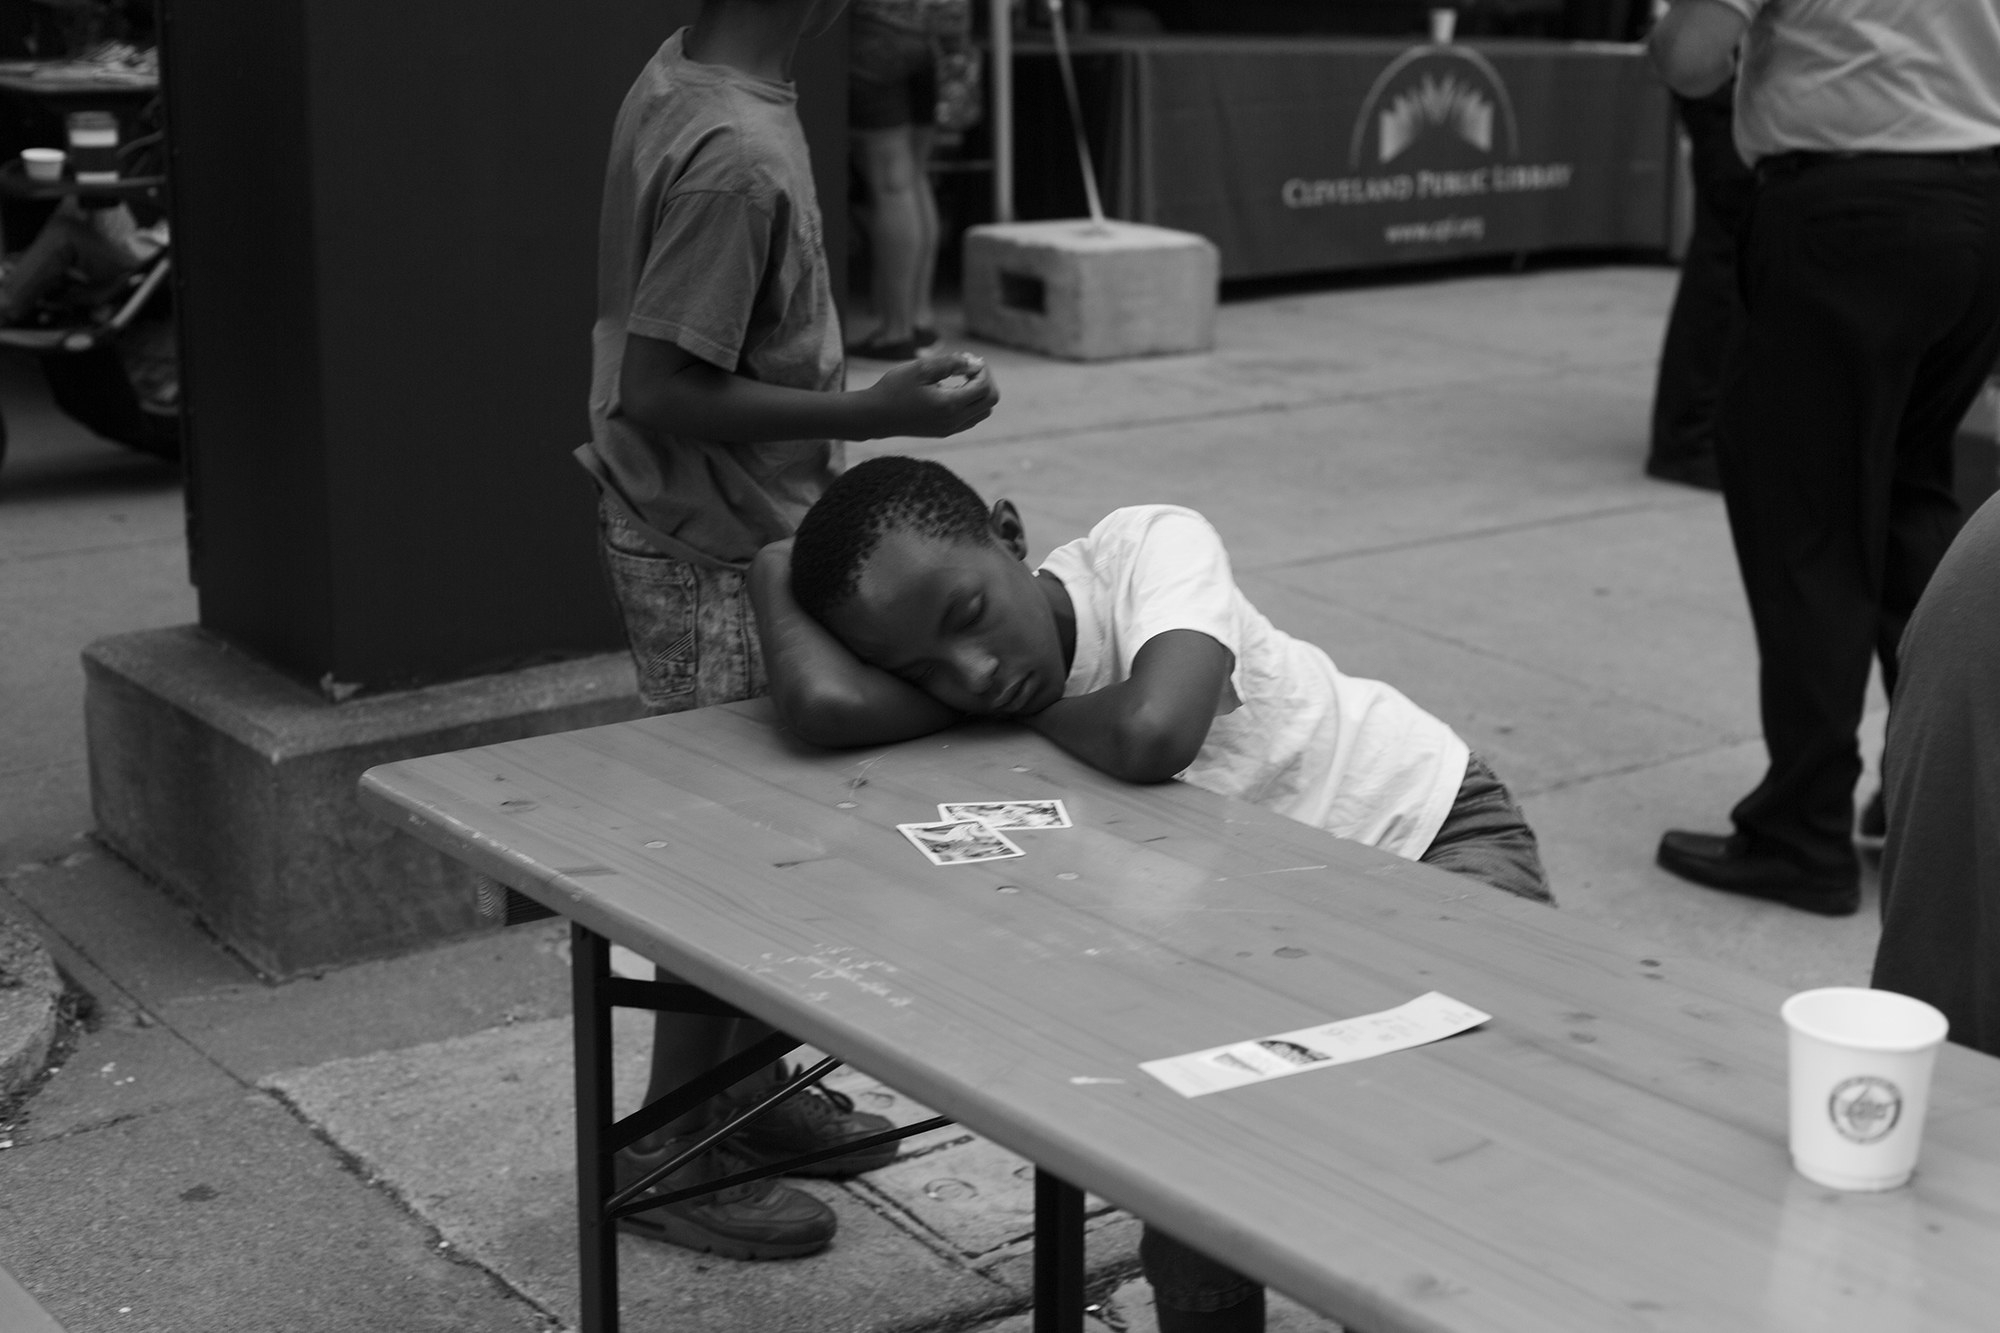 A small boy sleeps at a table outside while other children play in the background